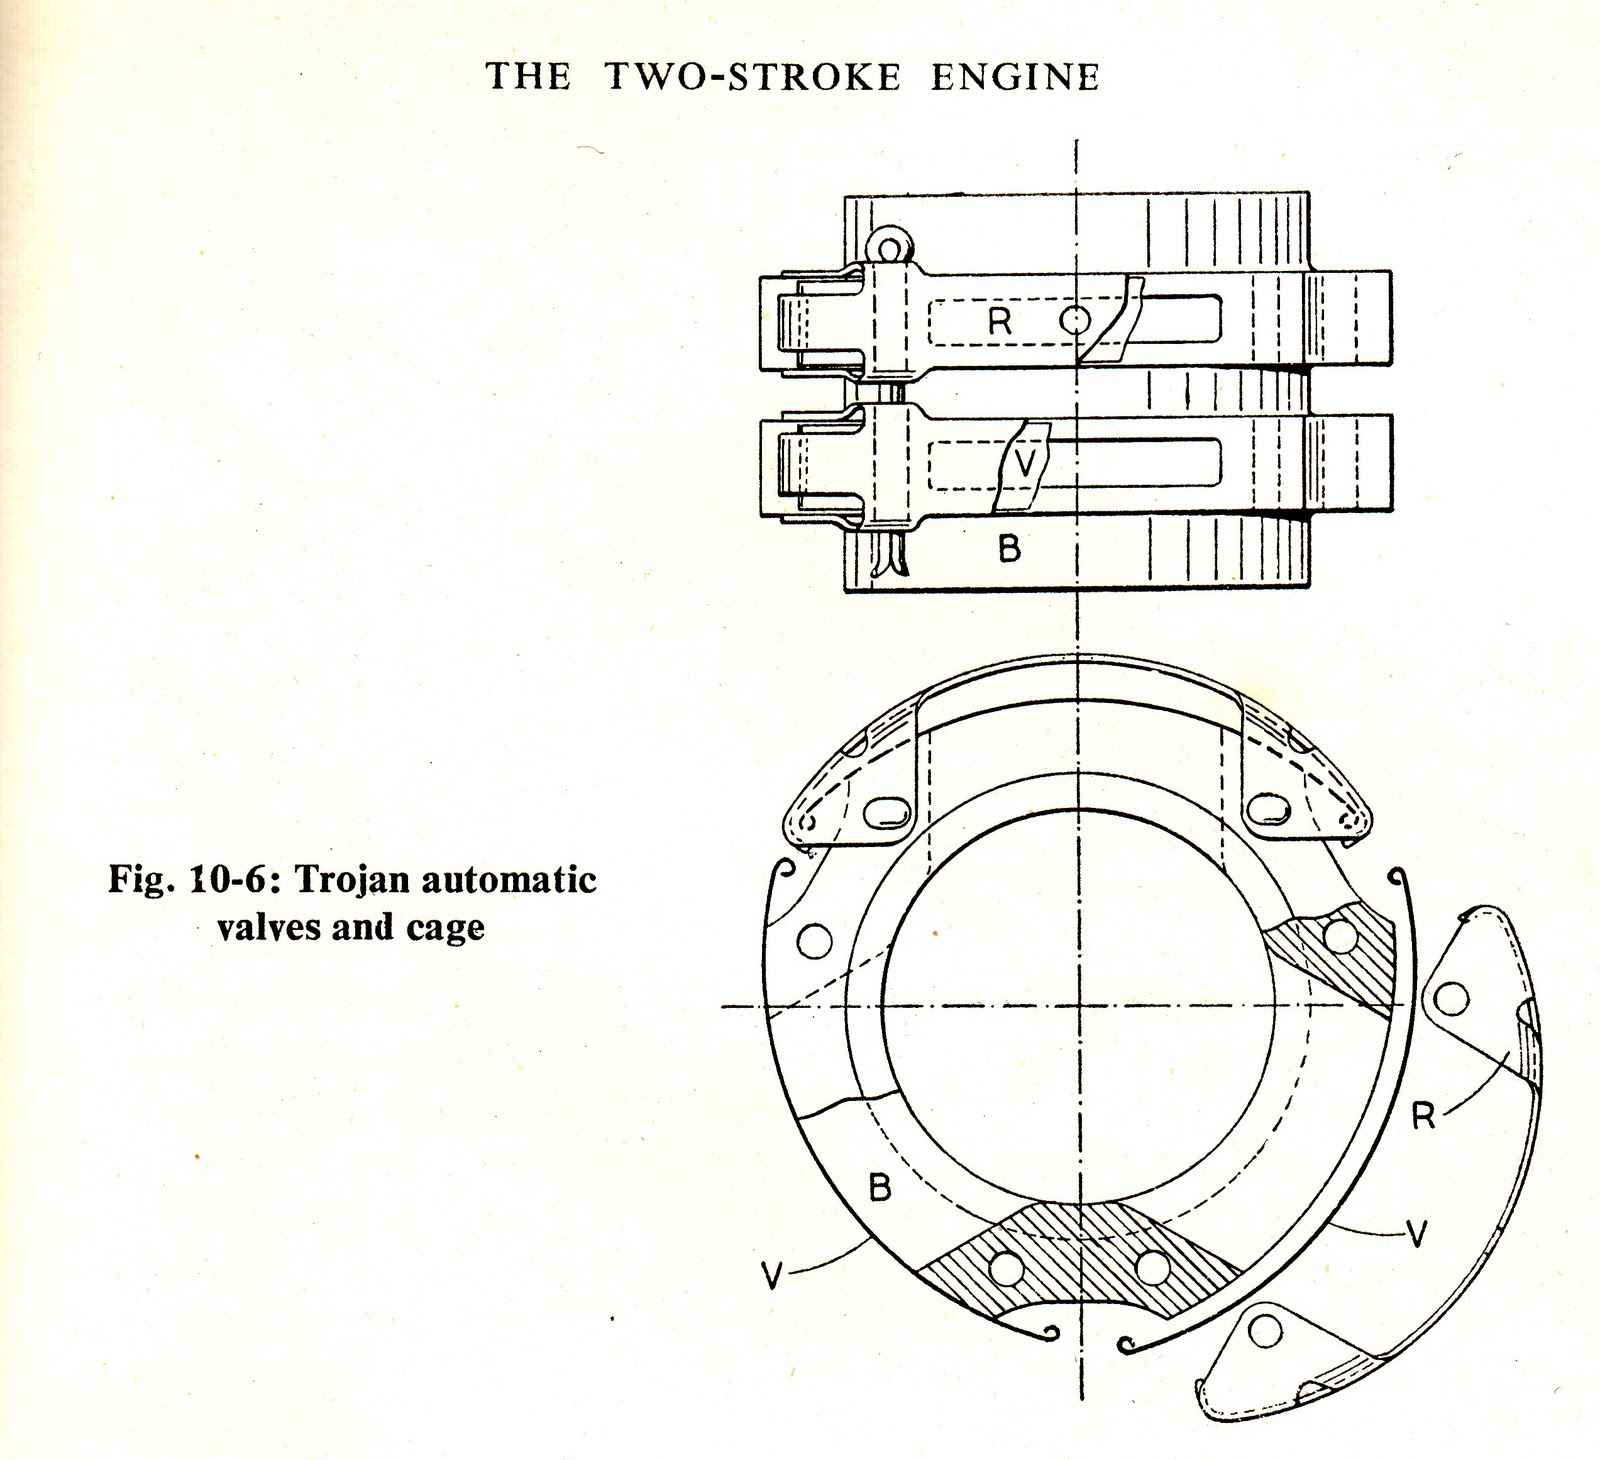 hight resolution of trojan automatic valves and cage